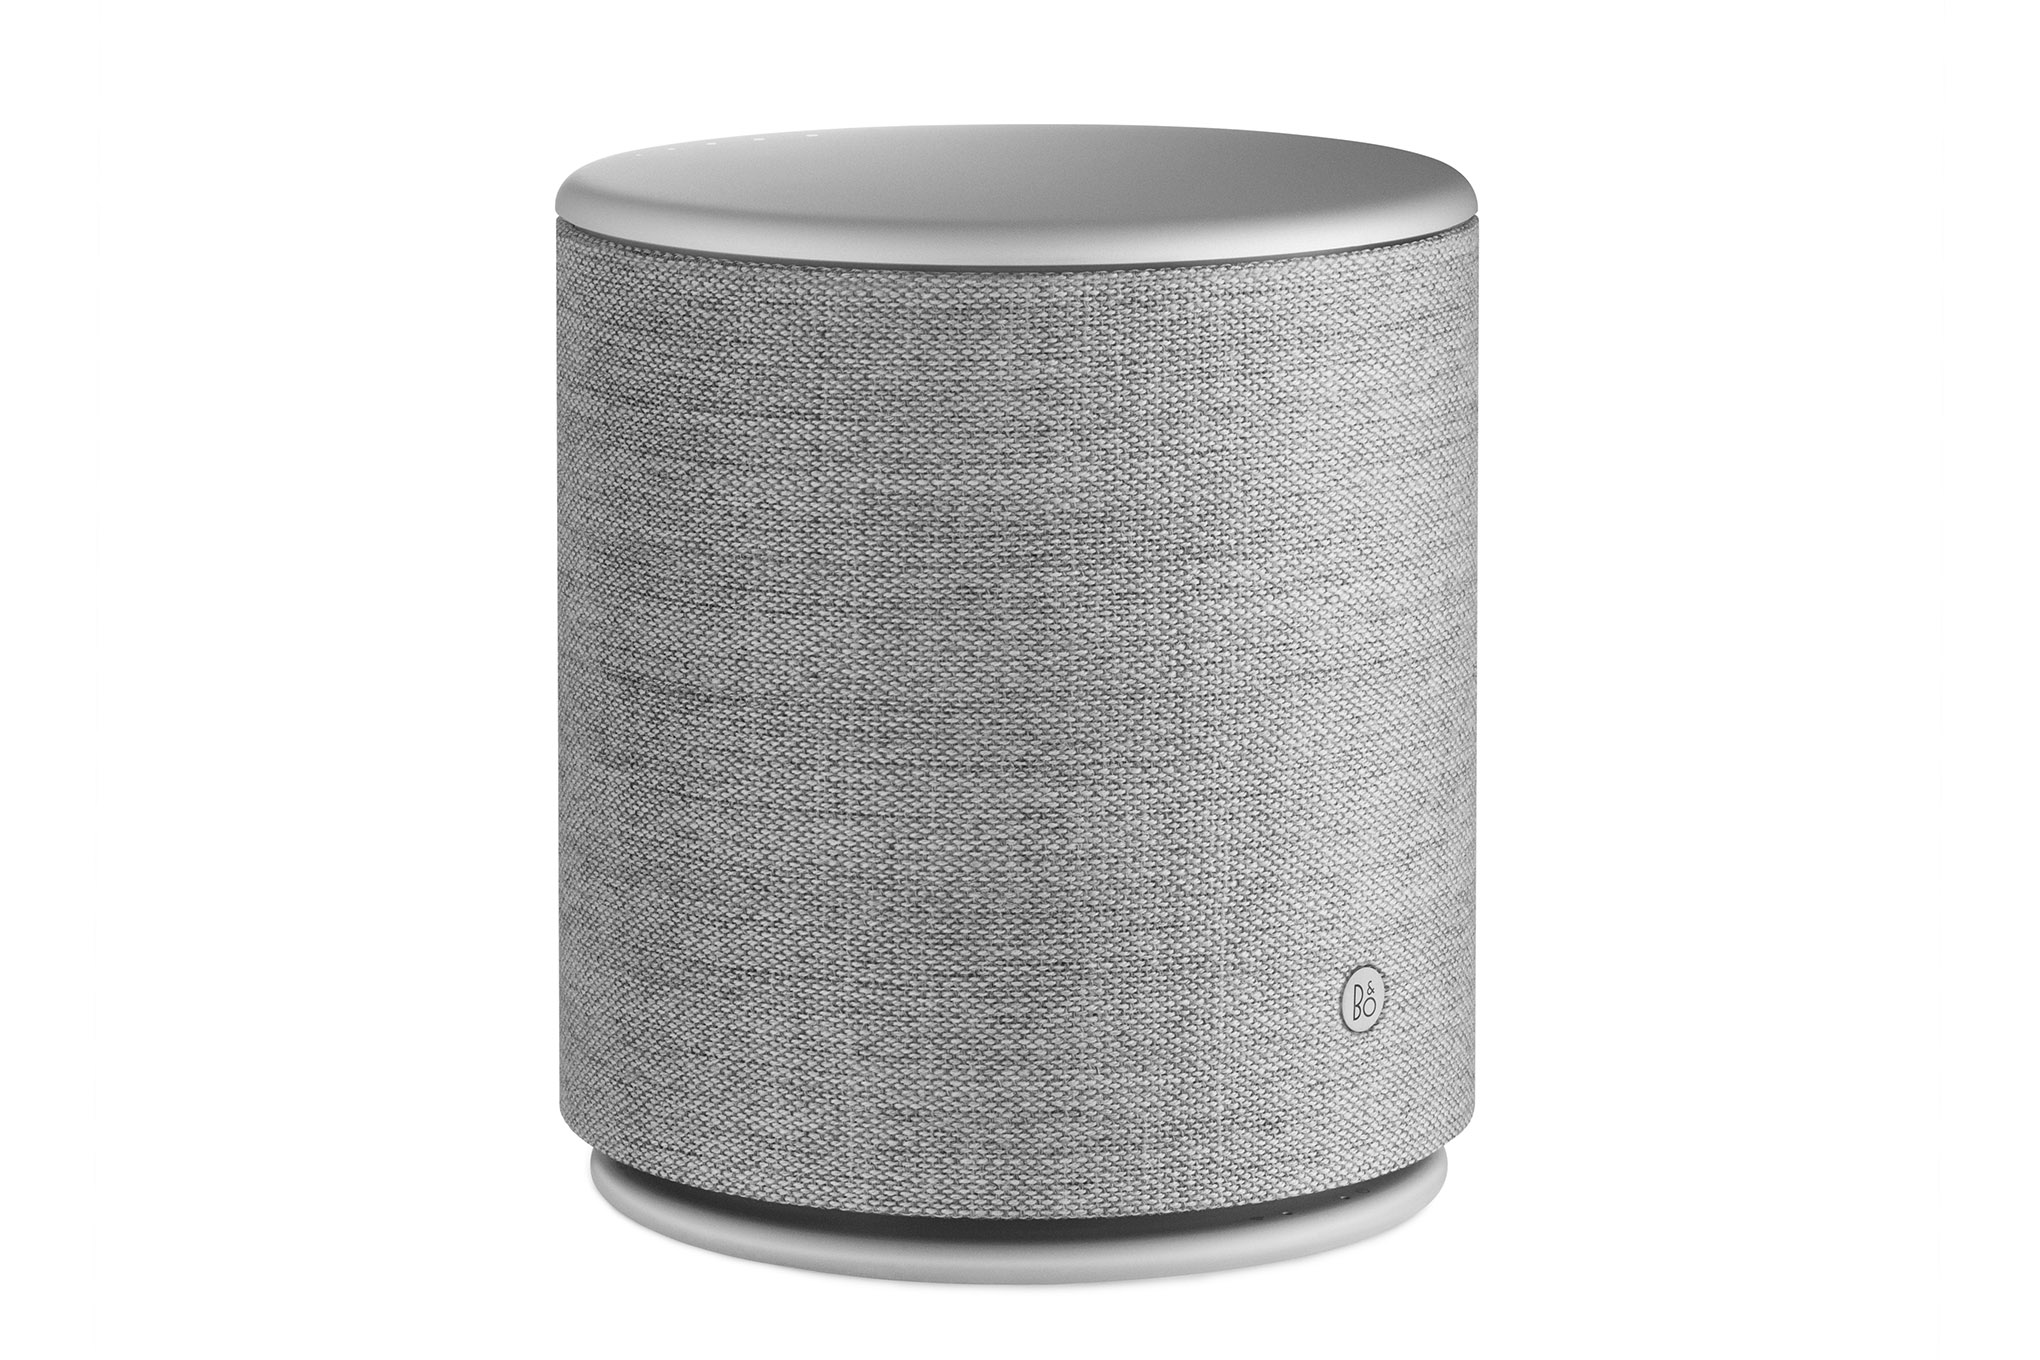 The Beoplay M5 Is A Big Pricey Wireless Cylinder Full Of